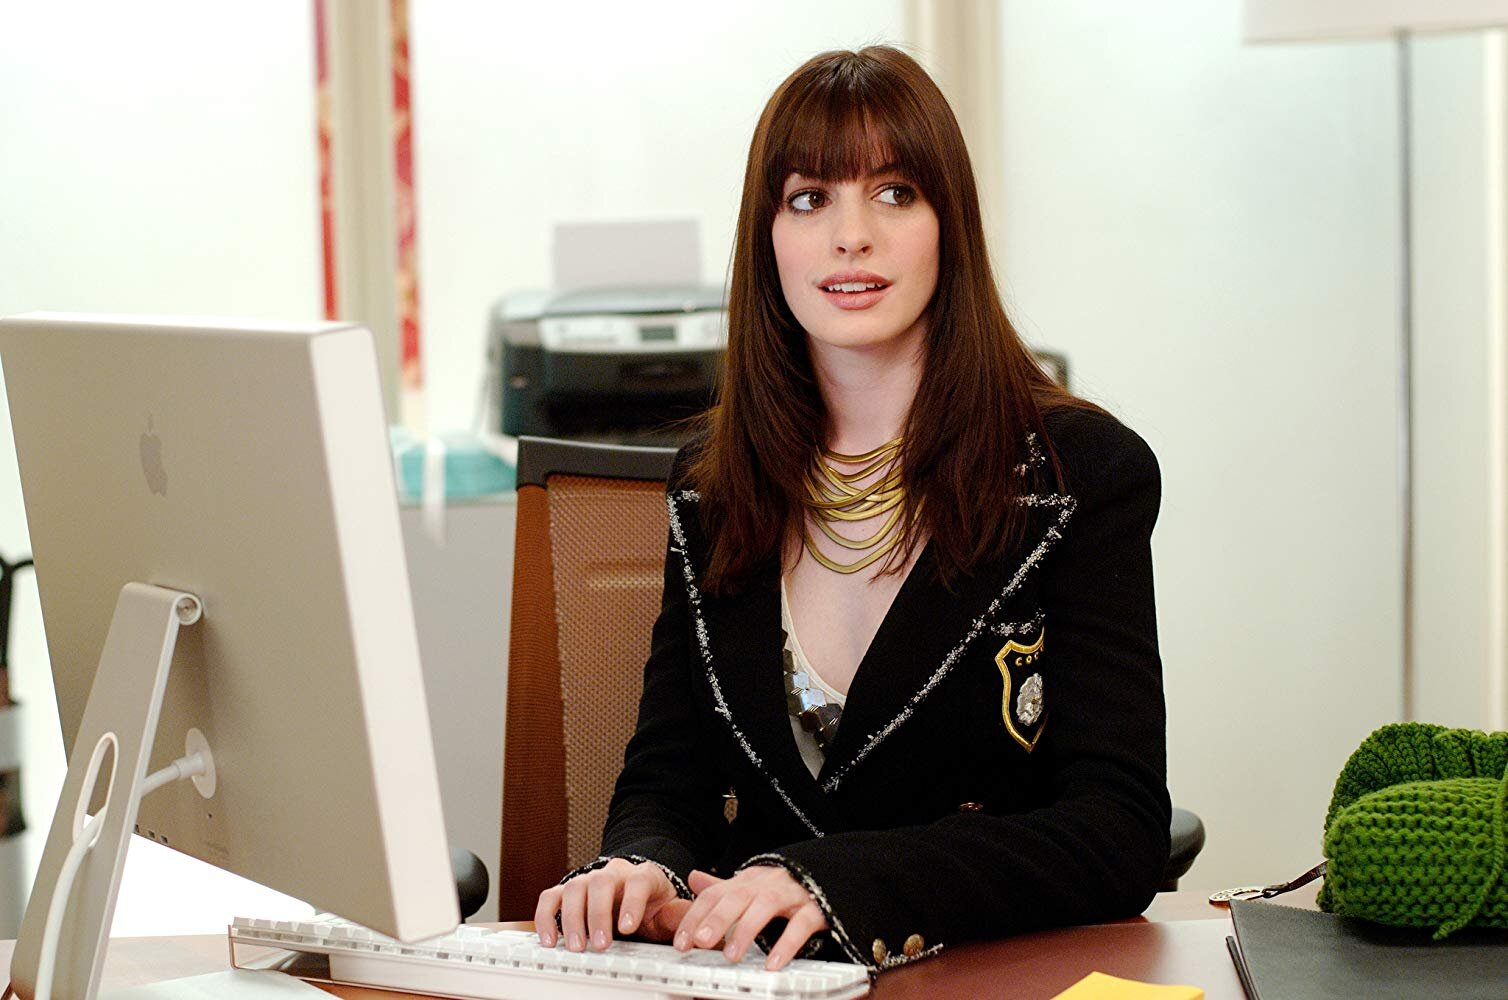 Anne Hathaway The Devil Wears Prada .jpg